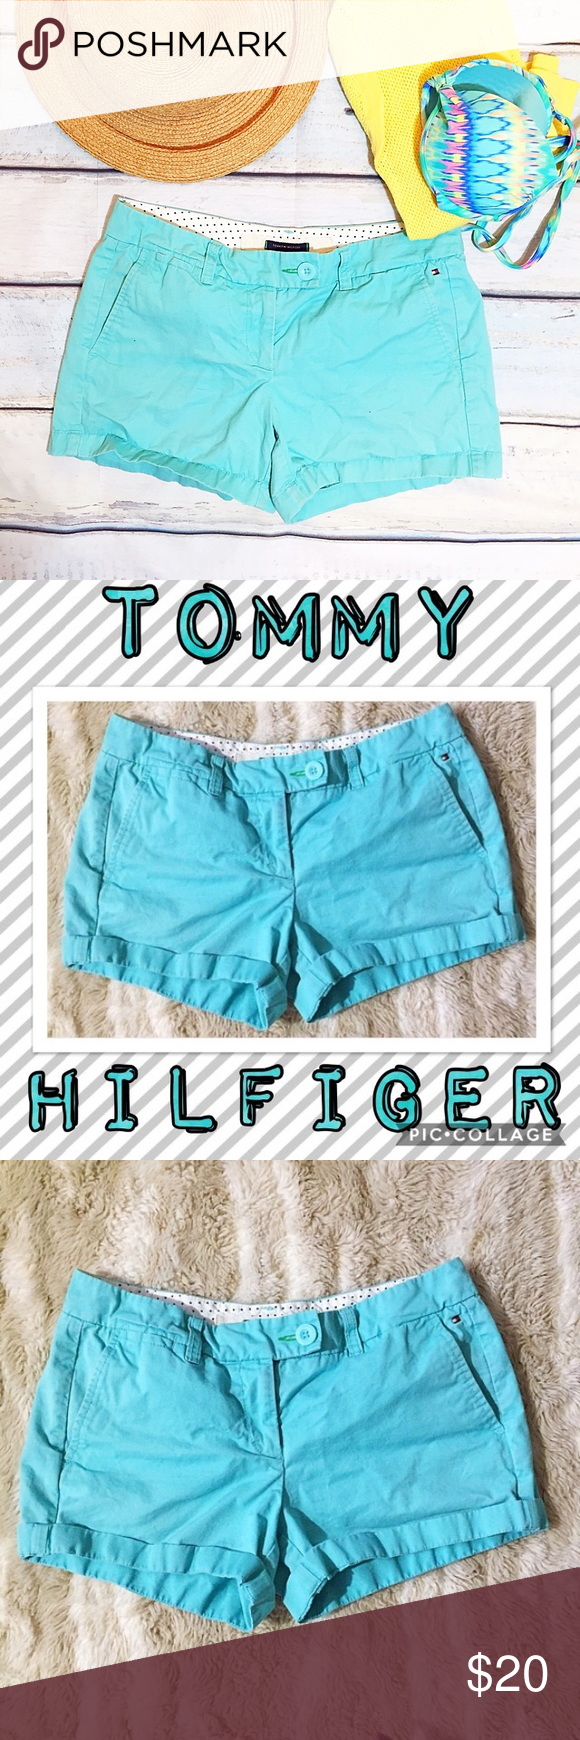 Tommy Hilfiger Turquoise Shorts Tommy Hilfiger Turquoise Shorts Size 6 Great Pop Of Color For Spring An Turquoise Shorts Tommy Hilfiger Shorts Tommy Hilfiger